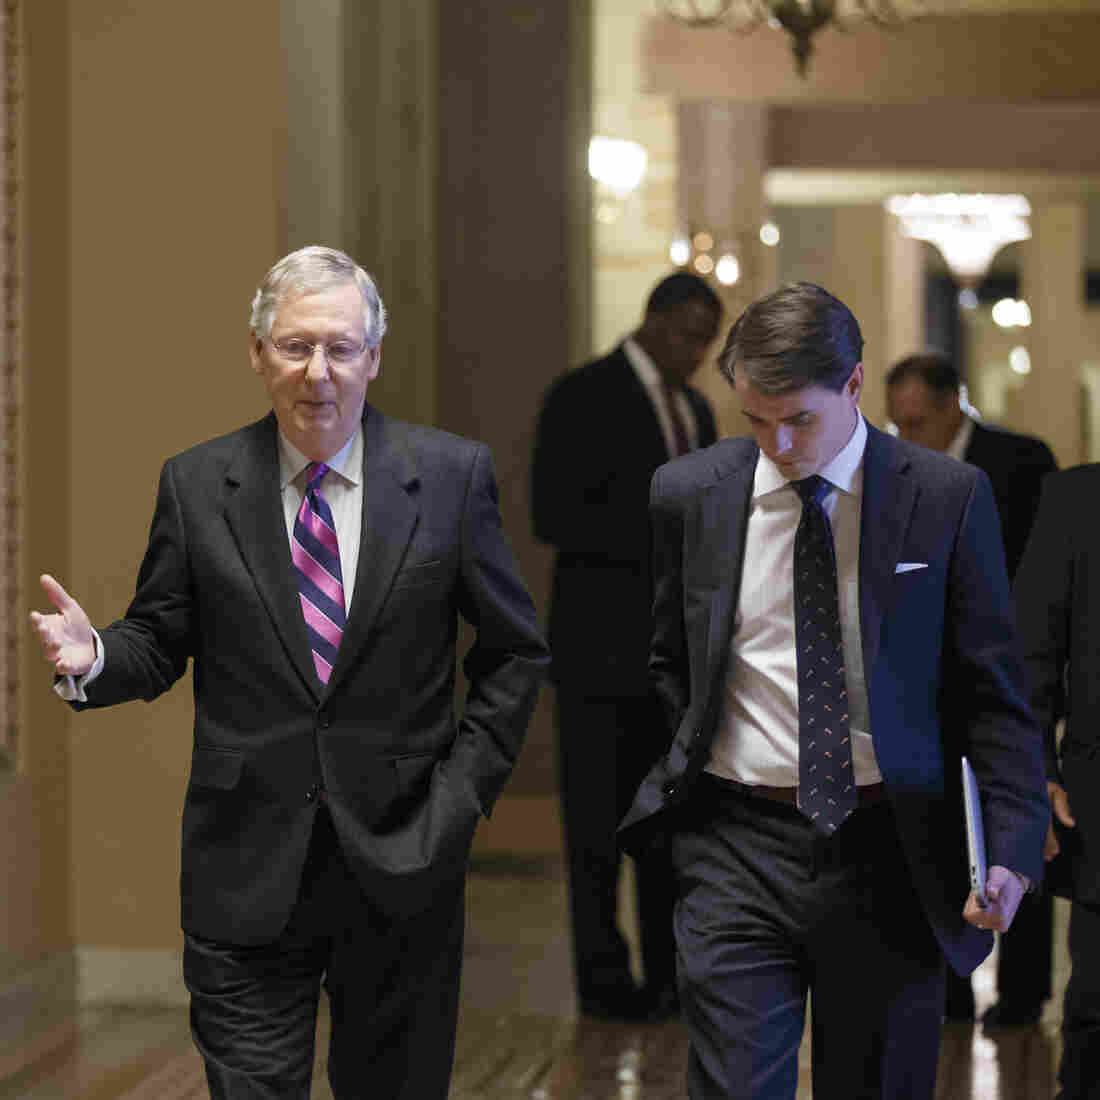 Senate Approves Budget Deal, Reducing Chances Of A Shutdown